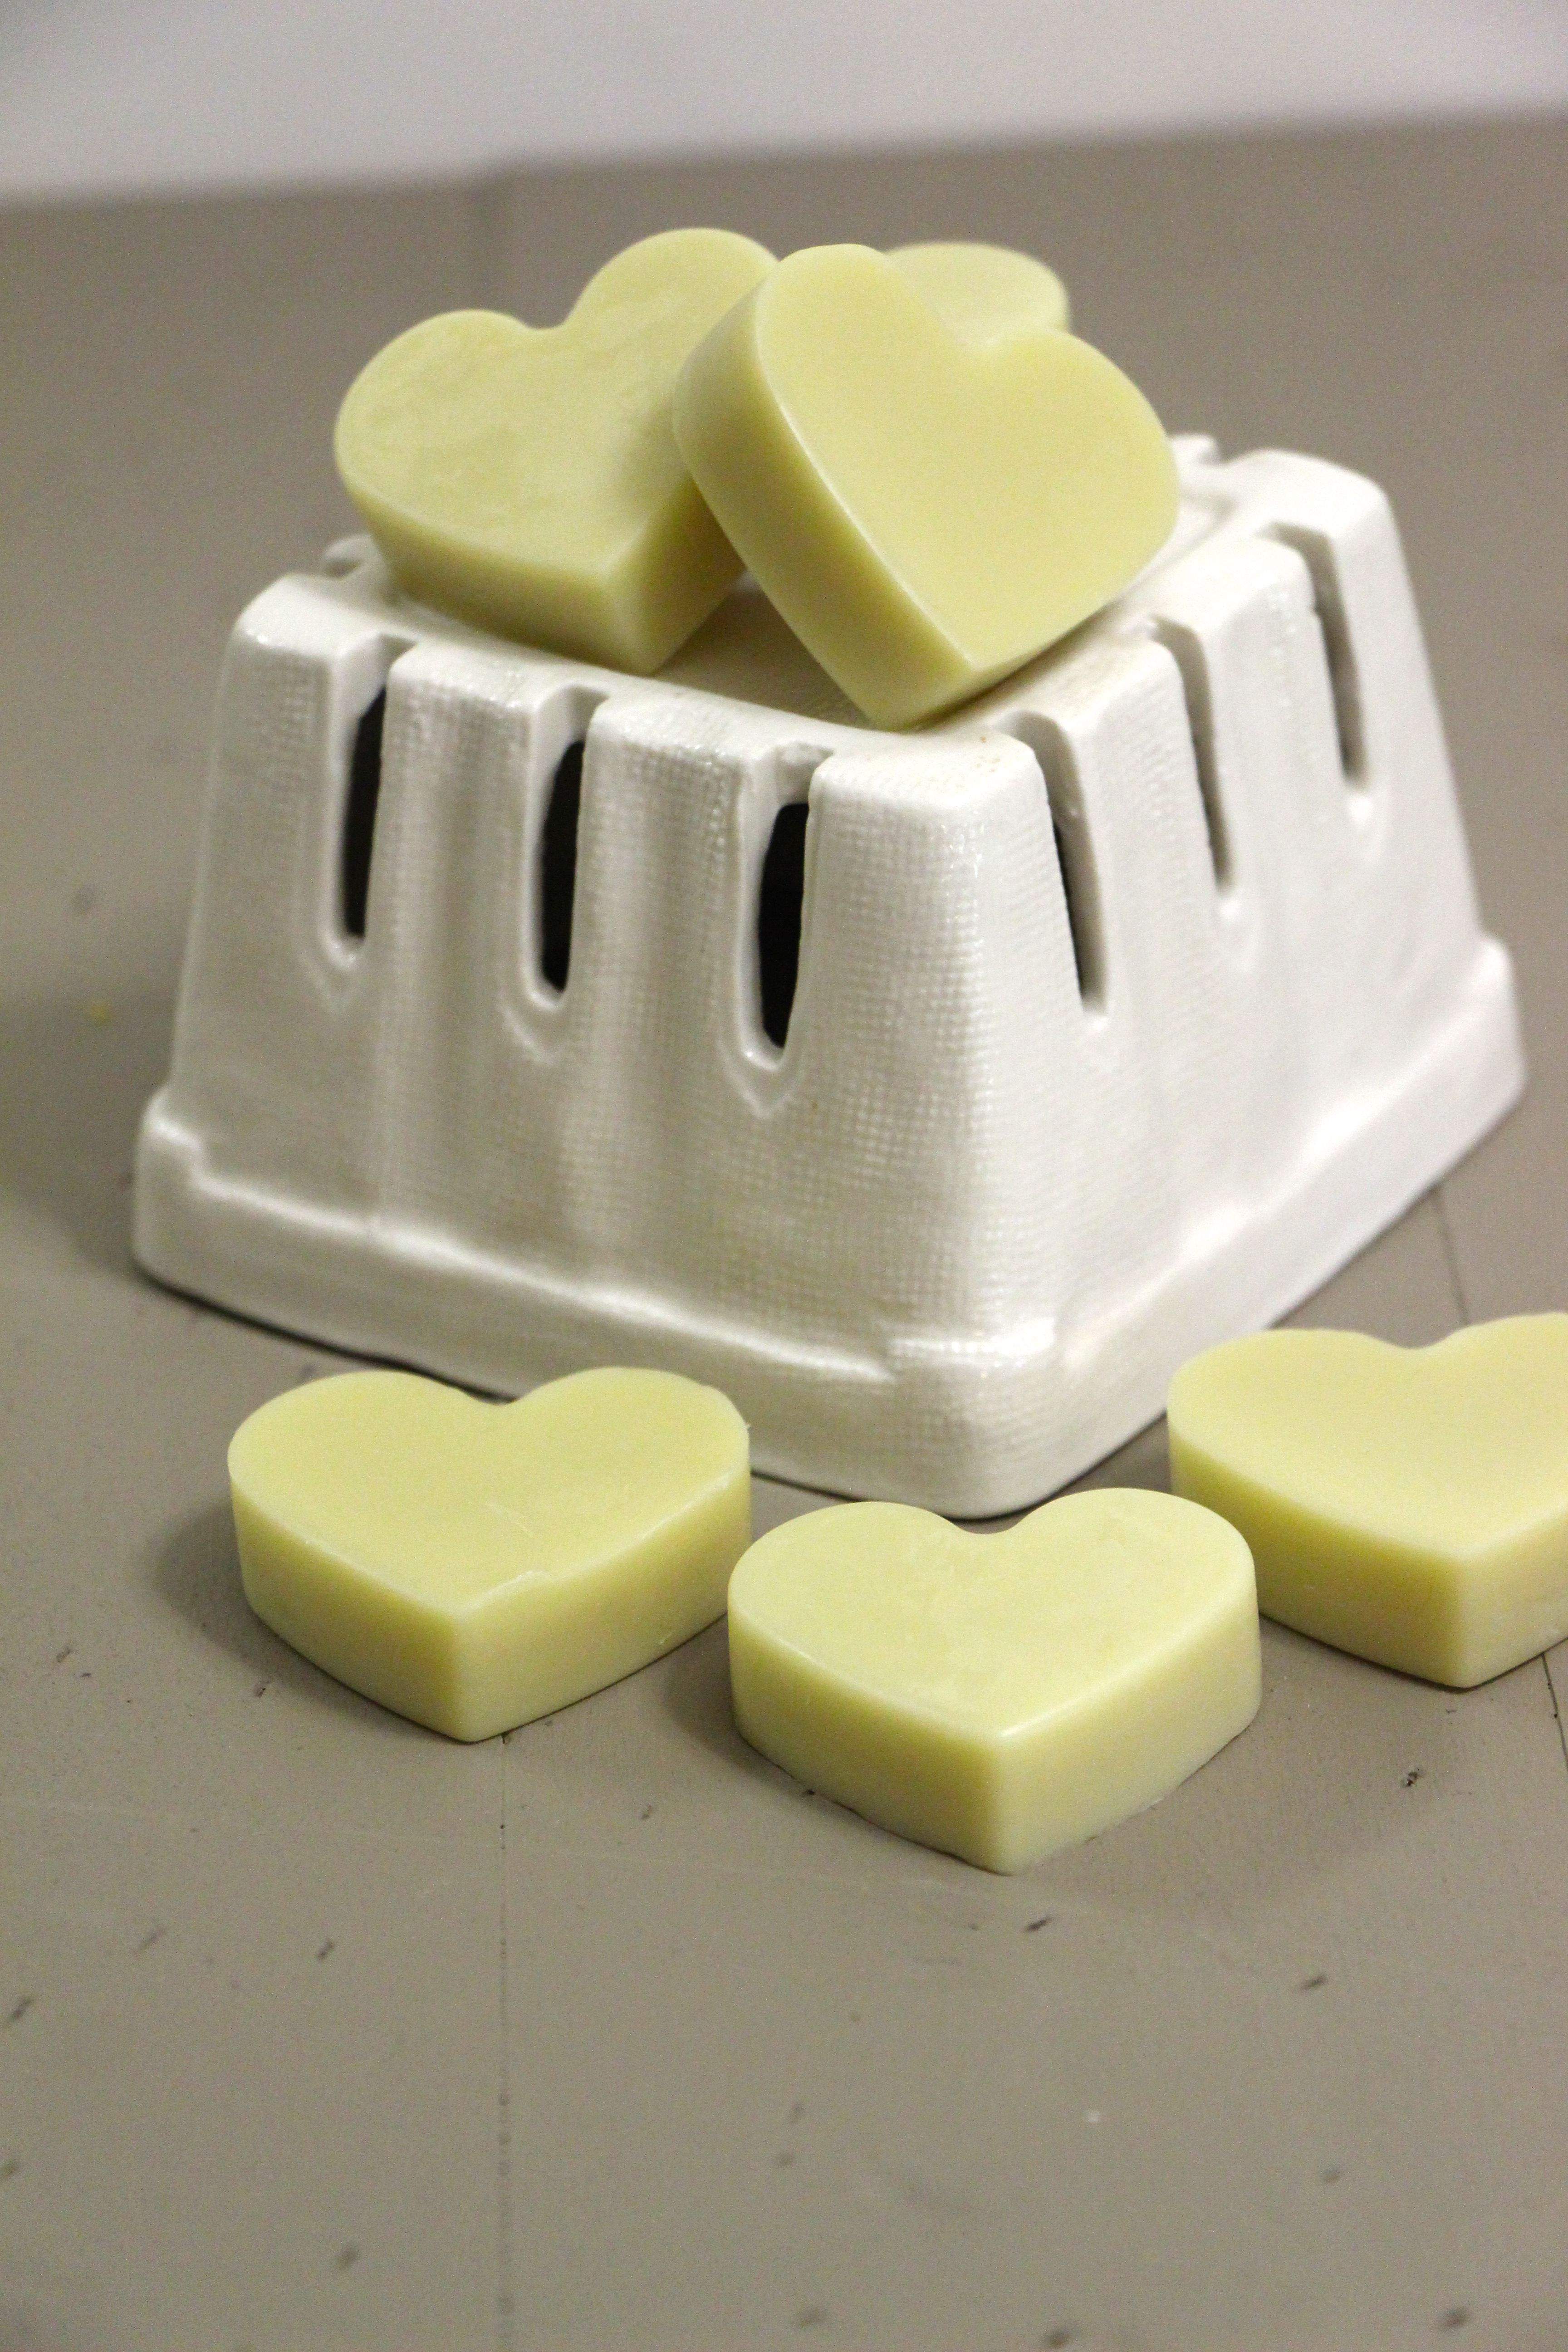 DIY Lotion Bars with Essential Oils Lotion Bars with Essential Oils http://justenjoyfood.com/2014/07/lotion-bars-essential-oils/